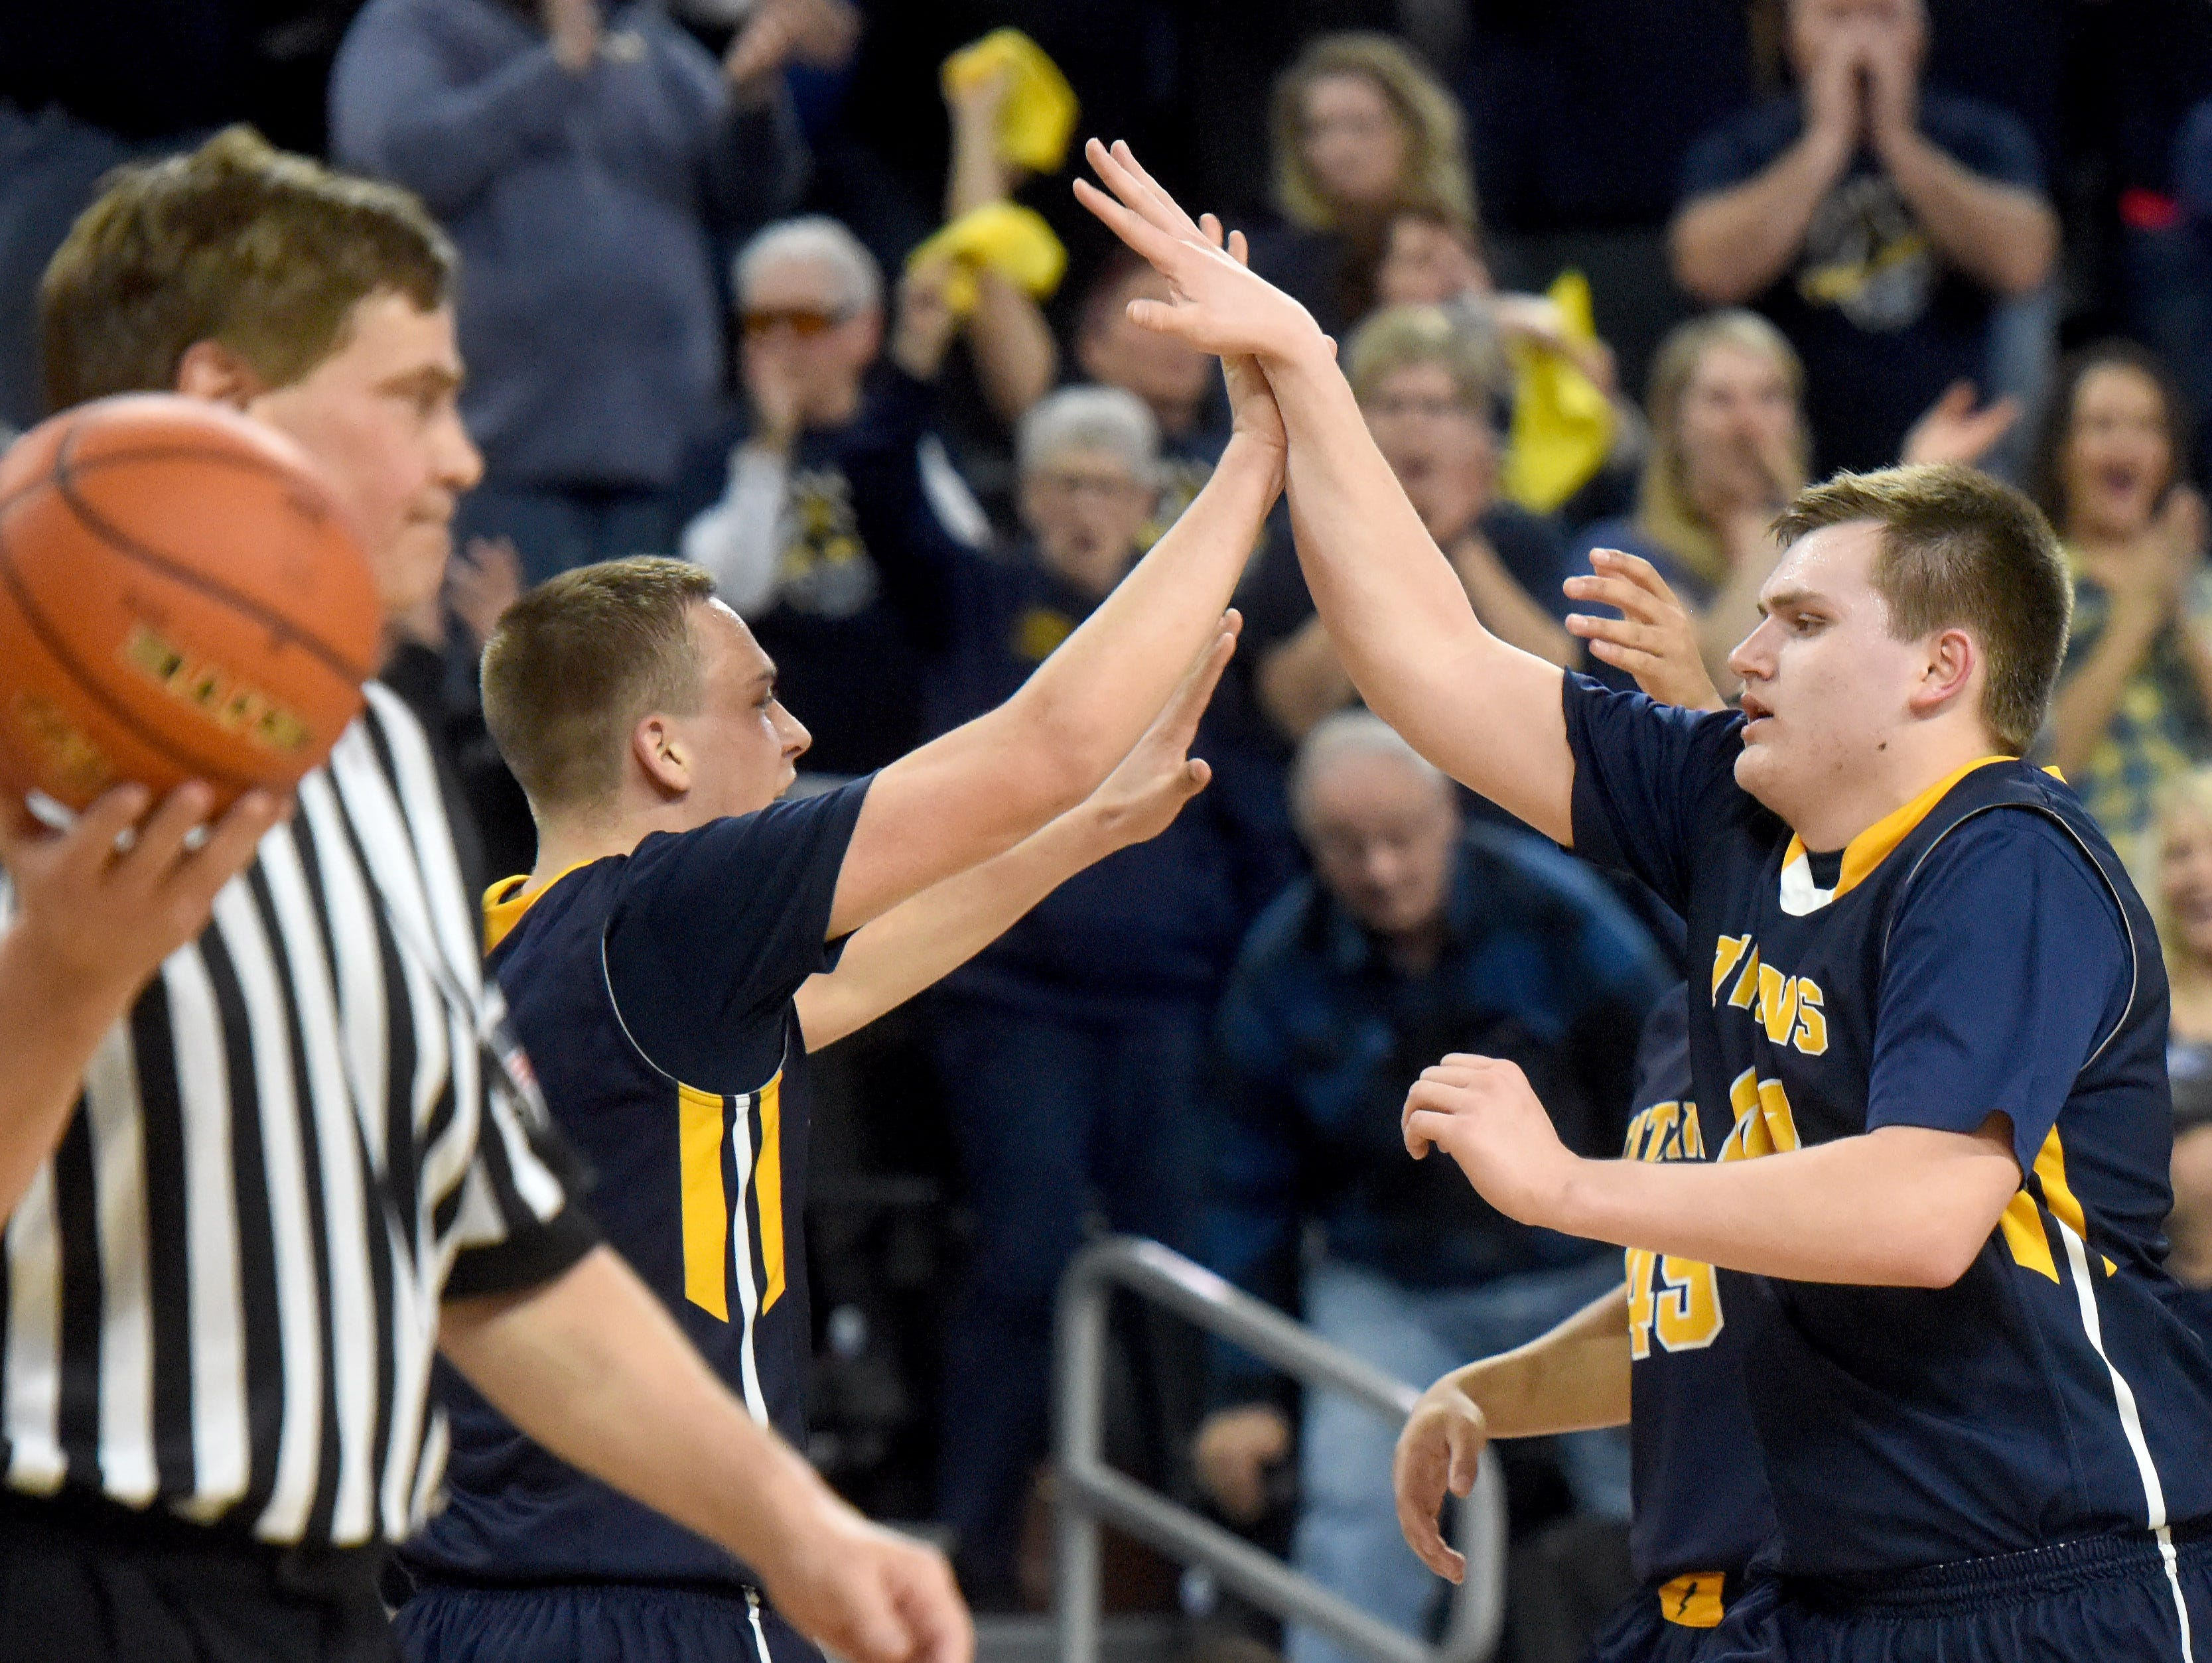 Tea Area's Noah Freidel high fives teammate Kaleb Joffer at half time against Madison during the 2017 SDHSAA Class A boy's basketball championship at the Denny Sanford Premier Center on Saturday, March 18, 2017.